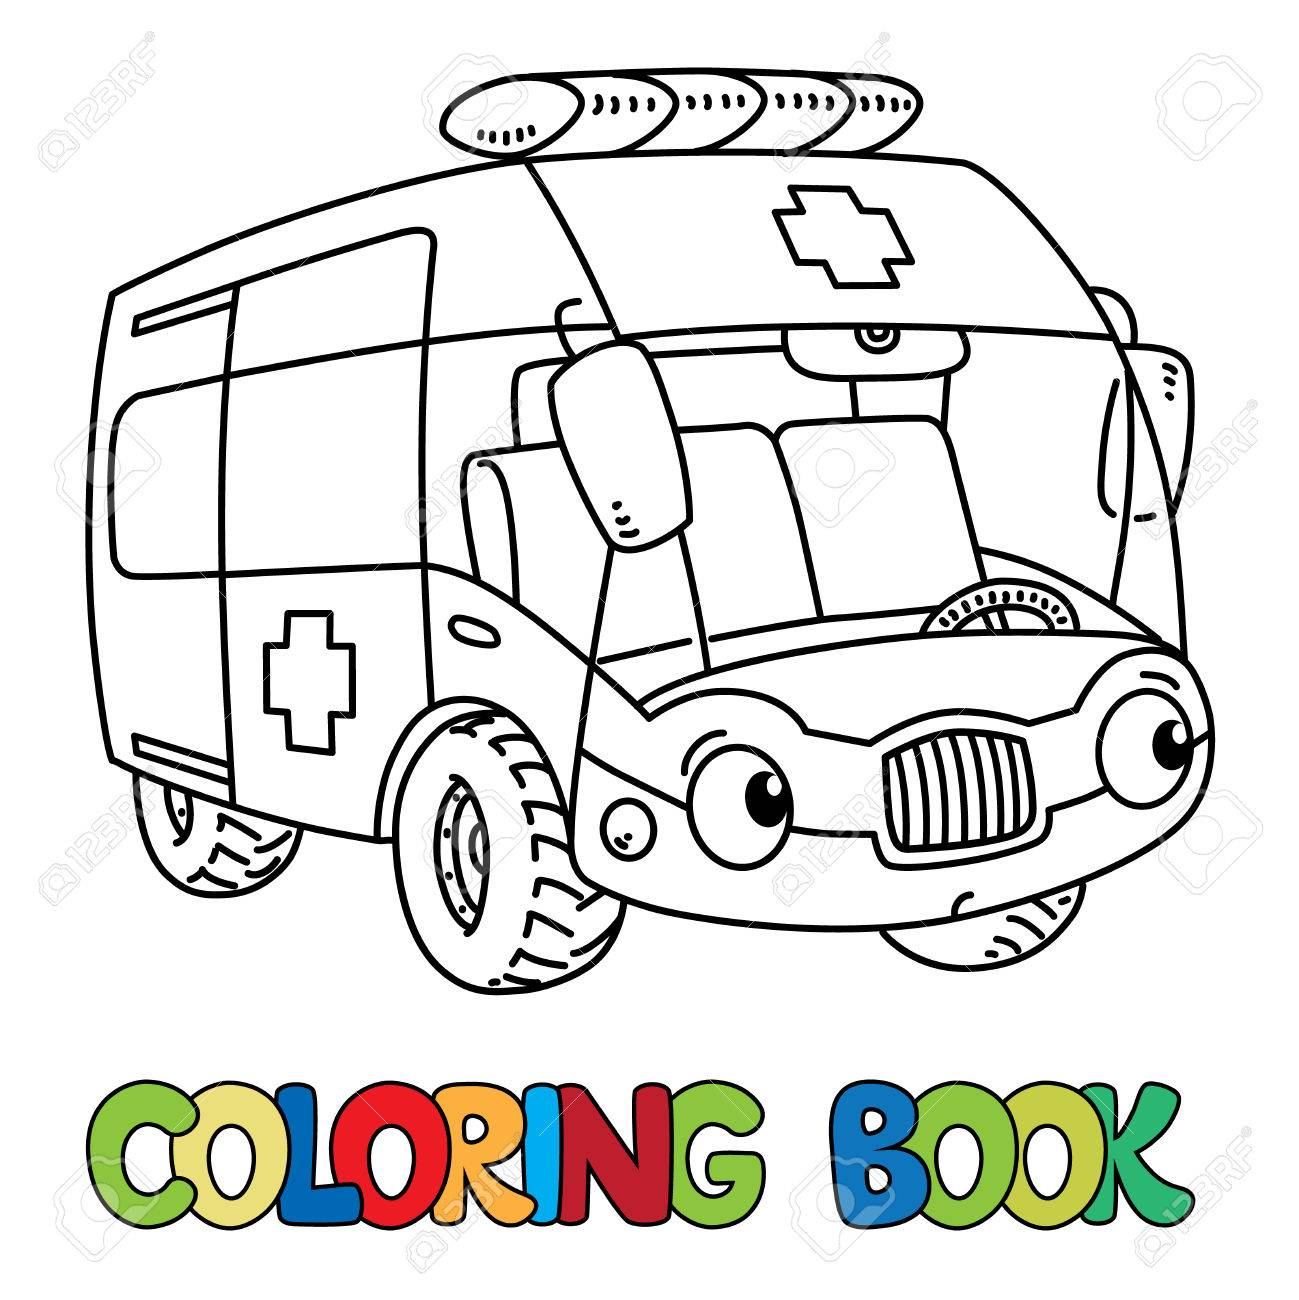 - Ambulance Car Coloring Book For Kids. Small Funny Vector Cute